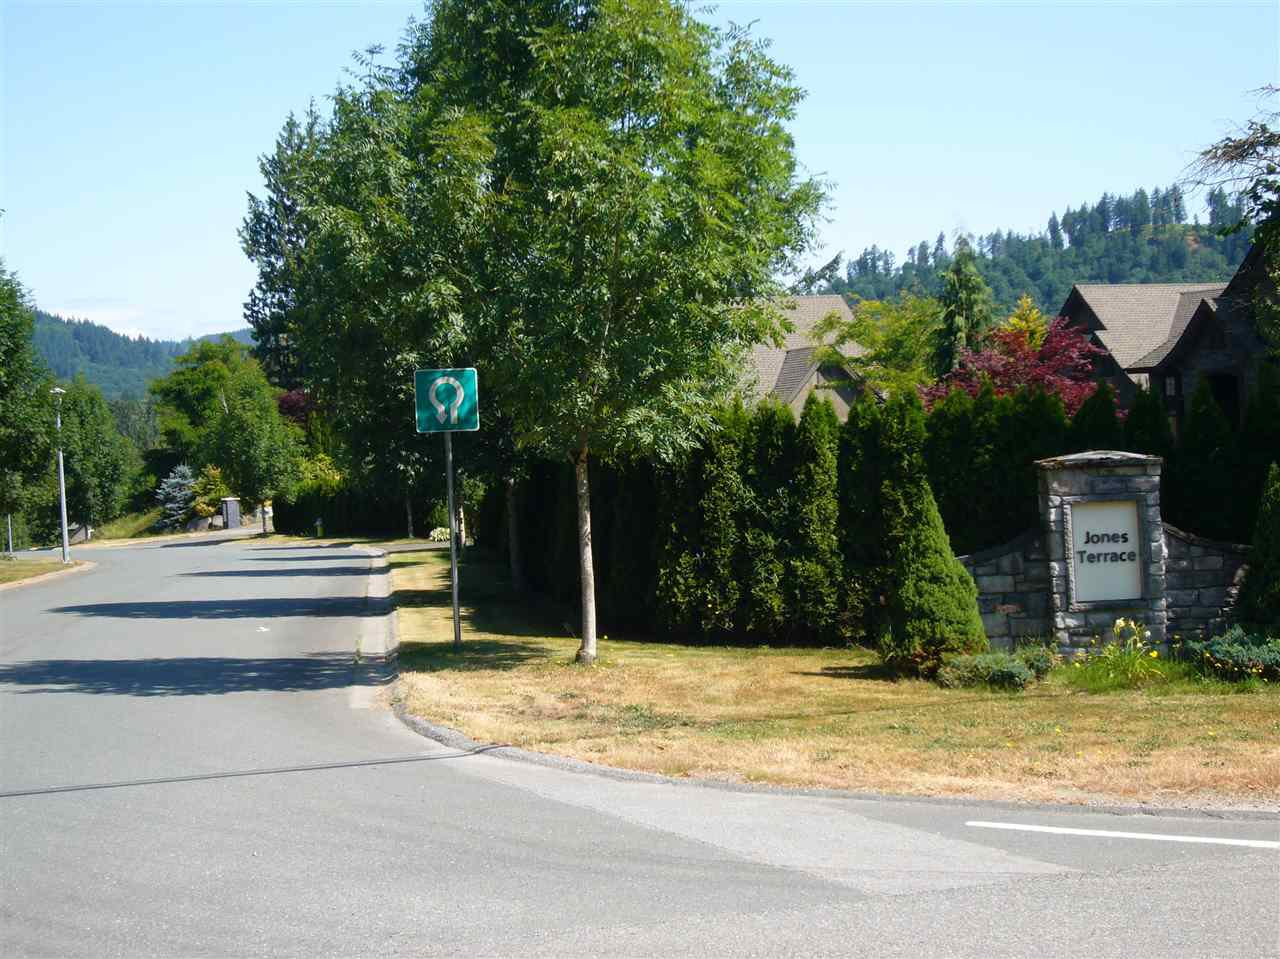 Photo 4: Photos: 34303 - 34317 DEWDNEY TRUNK Road in Mission: Mission BC Land for sale : MLS®# R2186942